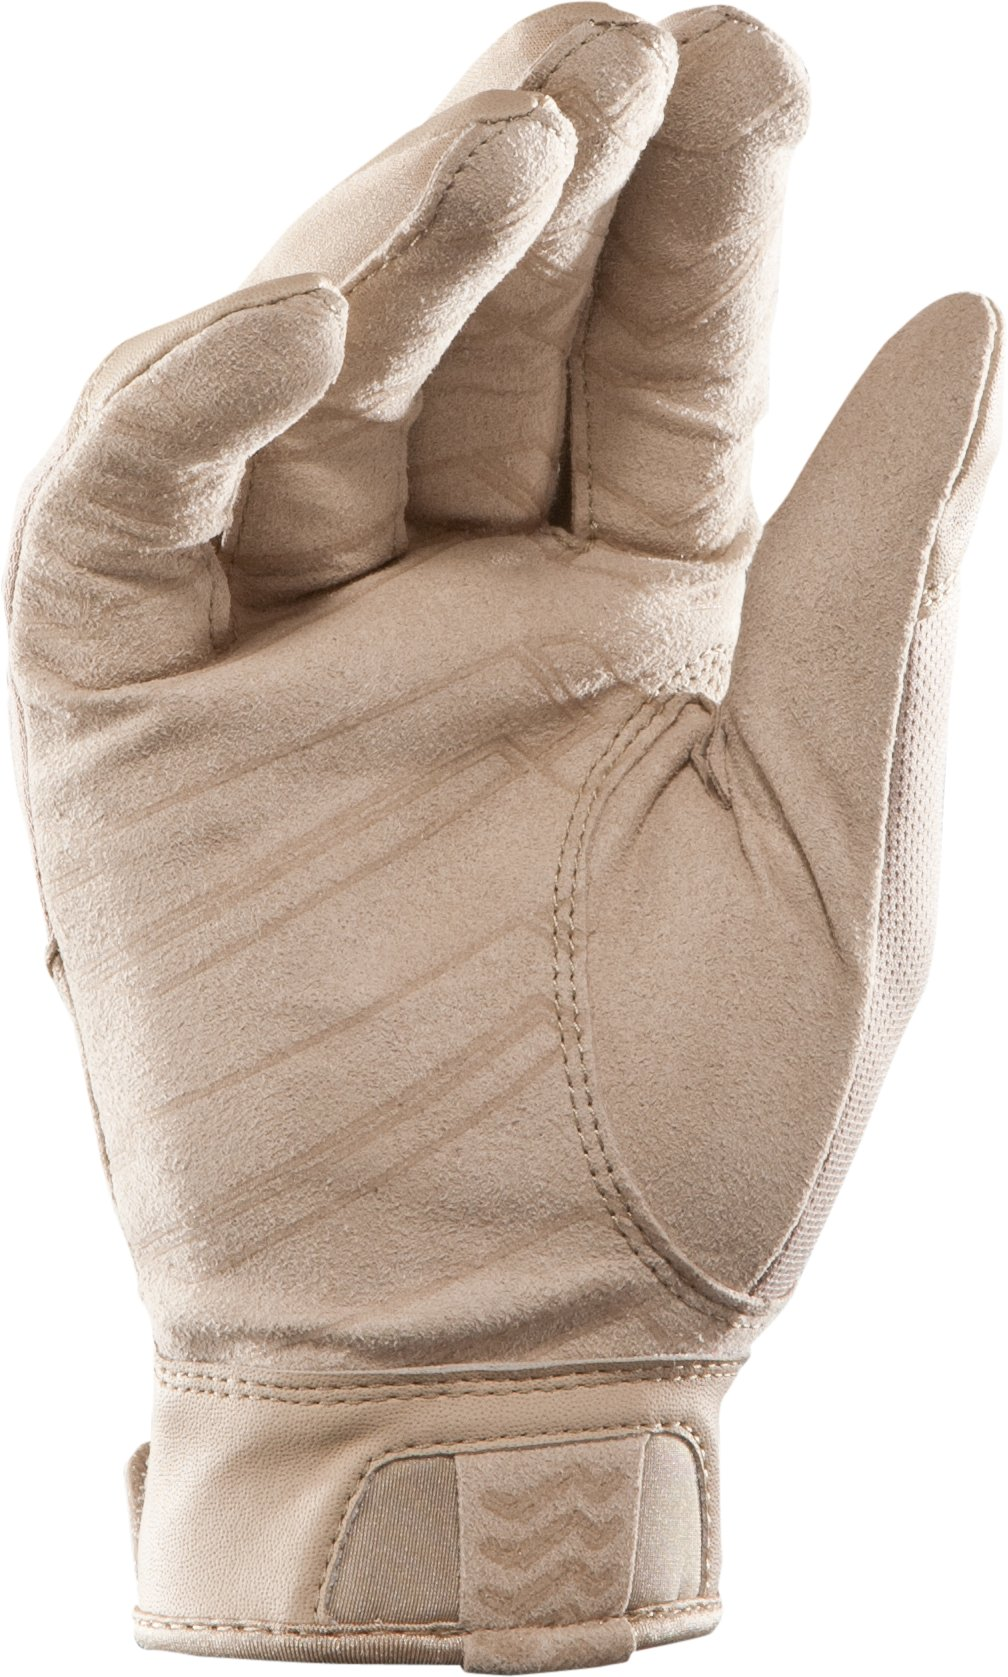 Men's Tactical Winter Blackout Glove, Desert Sand, undefined